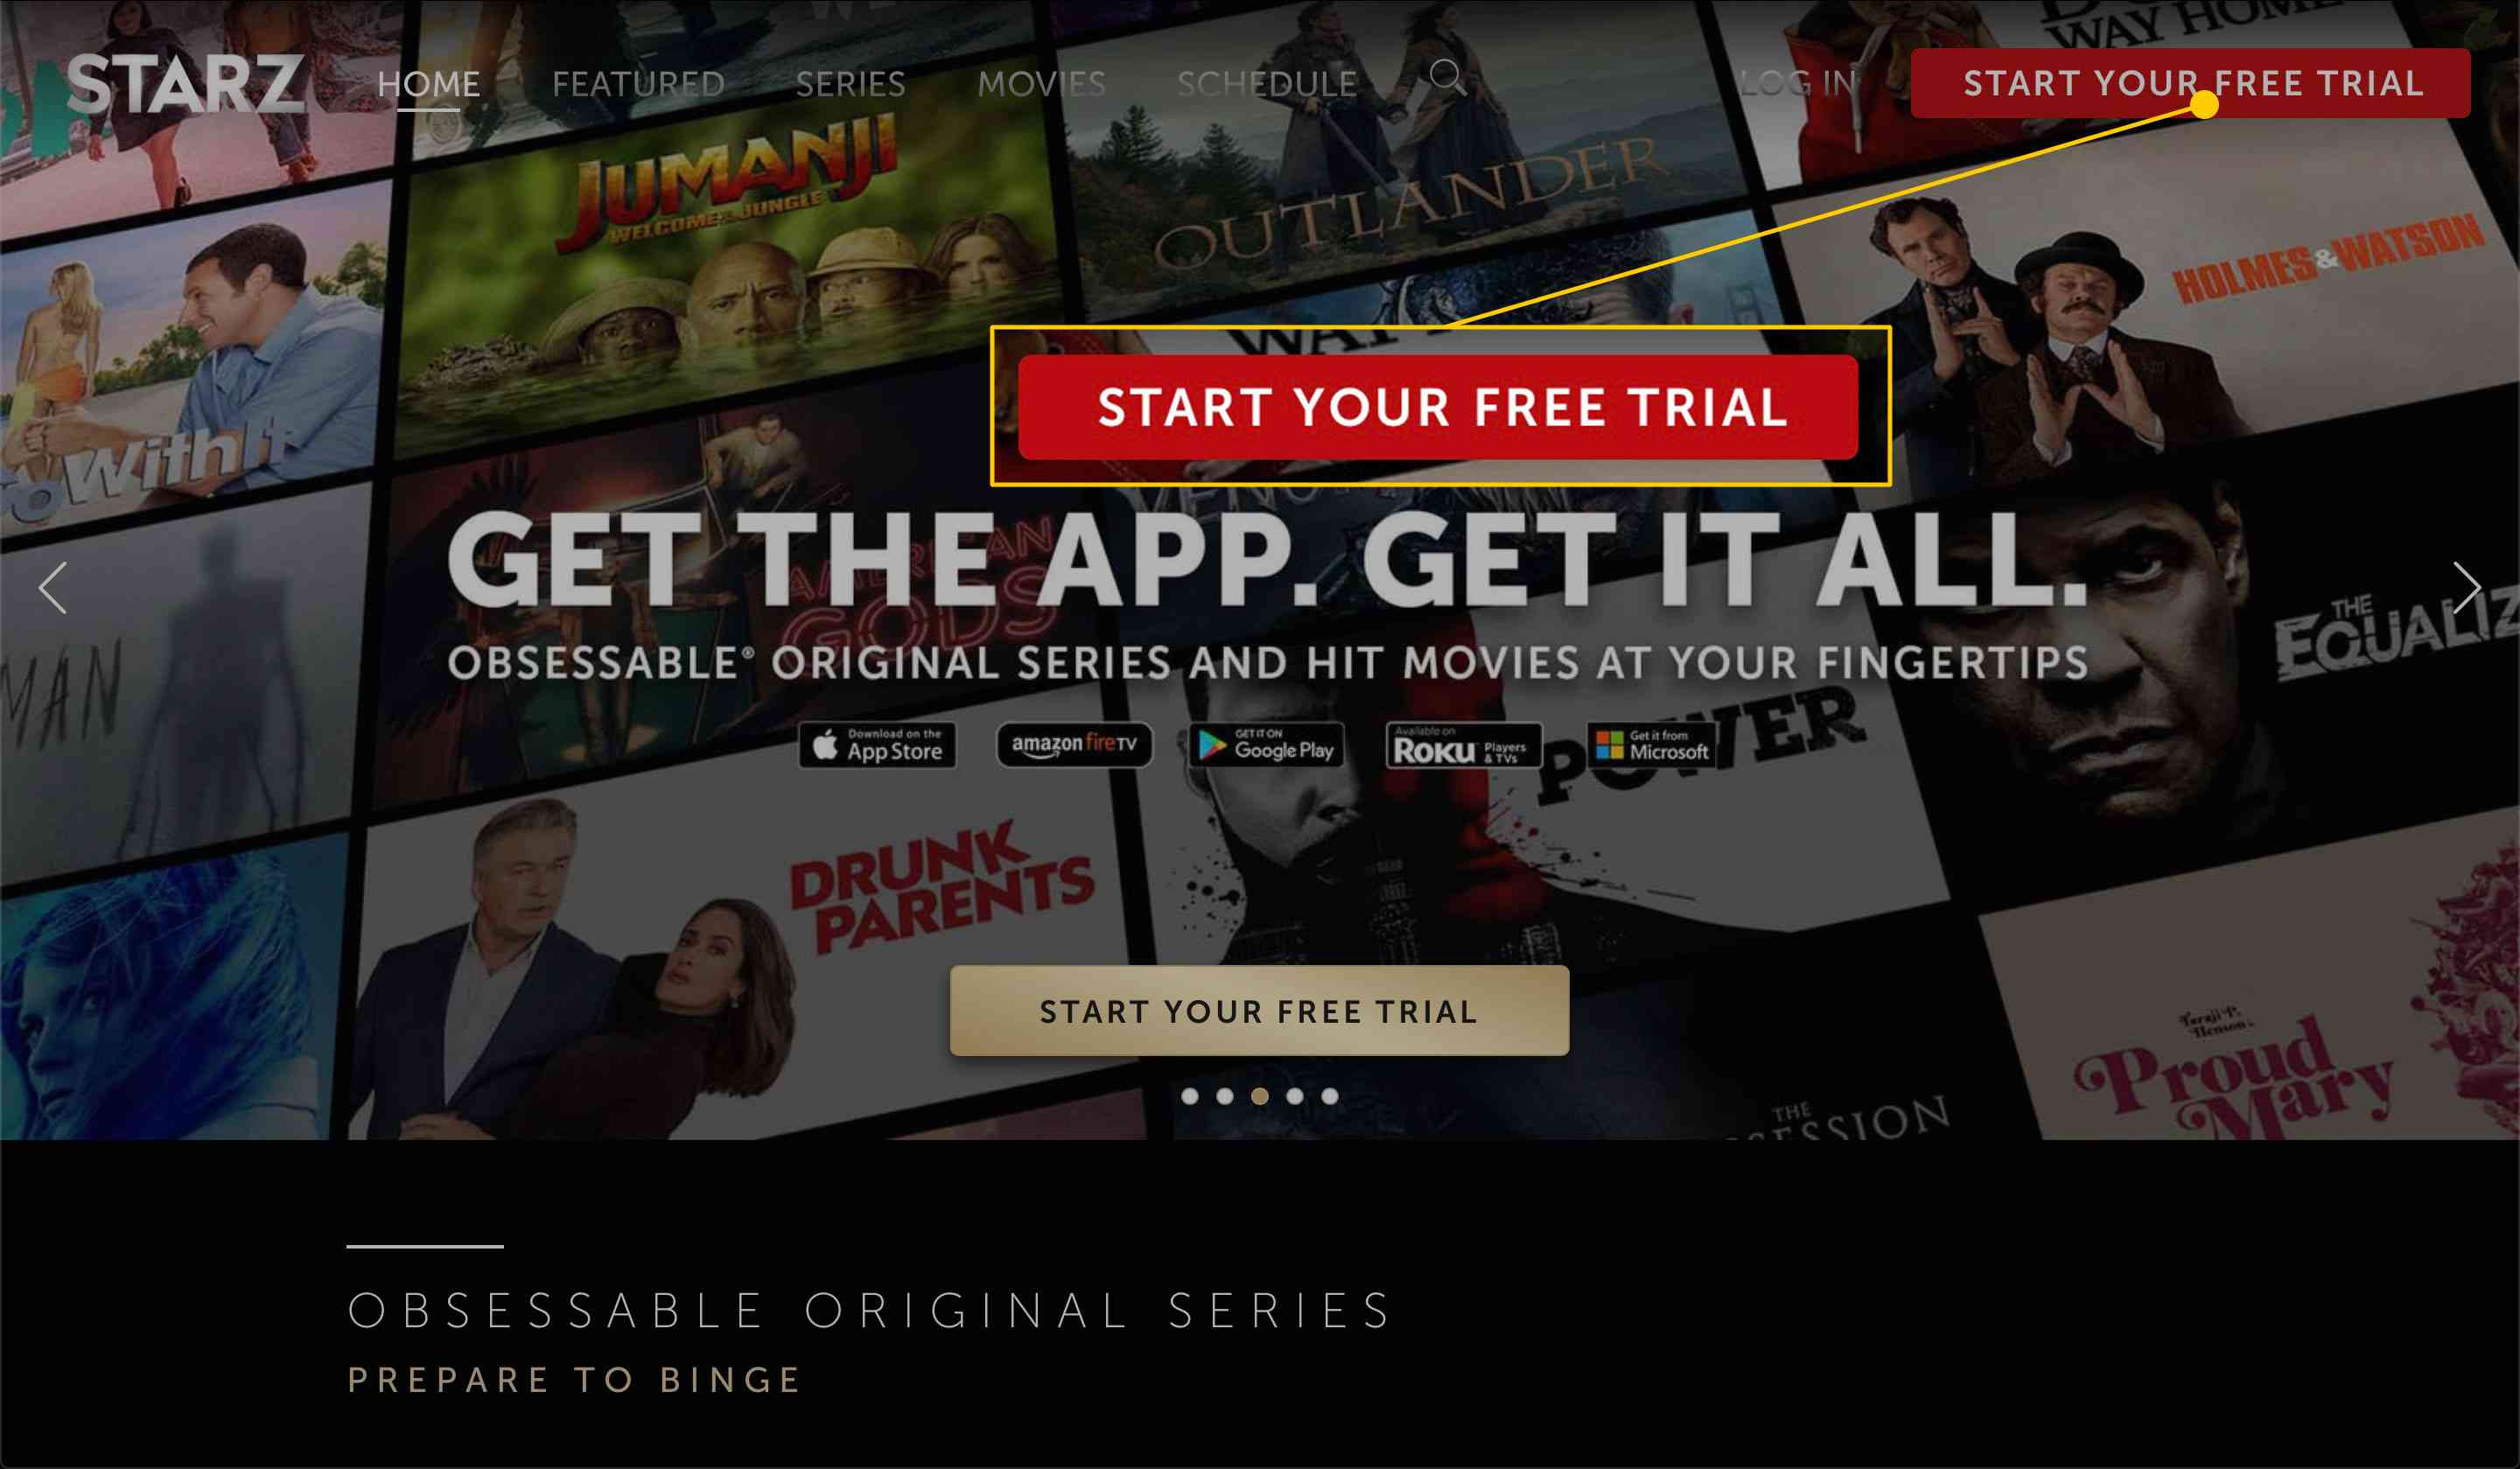 Starz home page with the Start Your Free Trial button highlighted